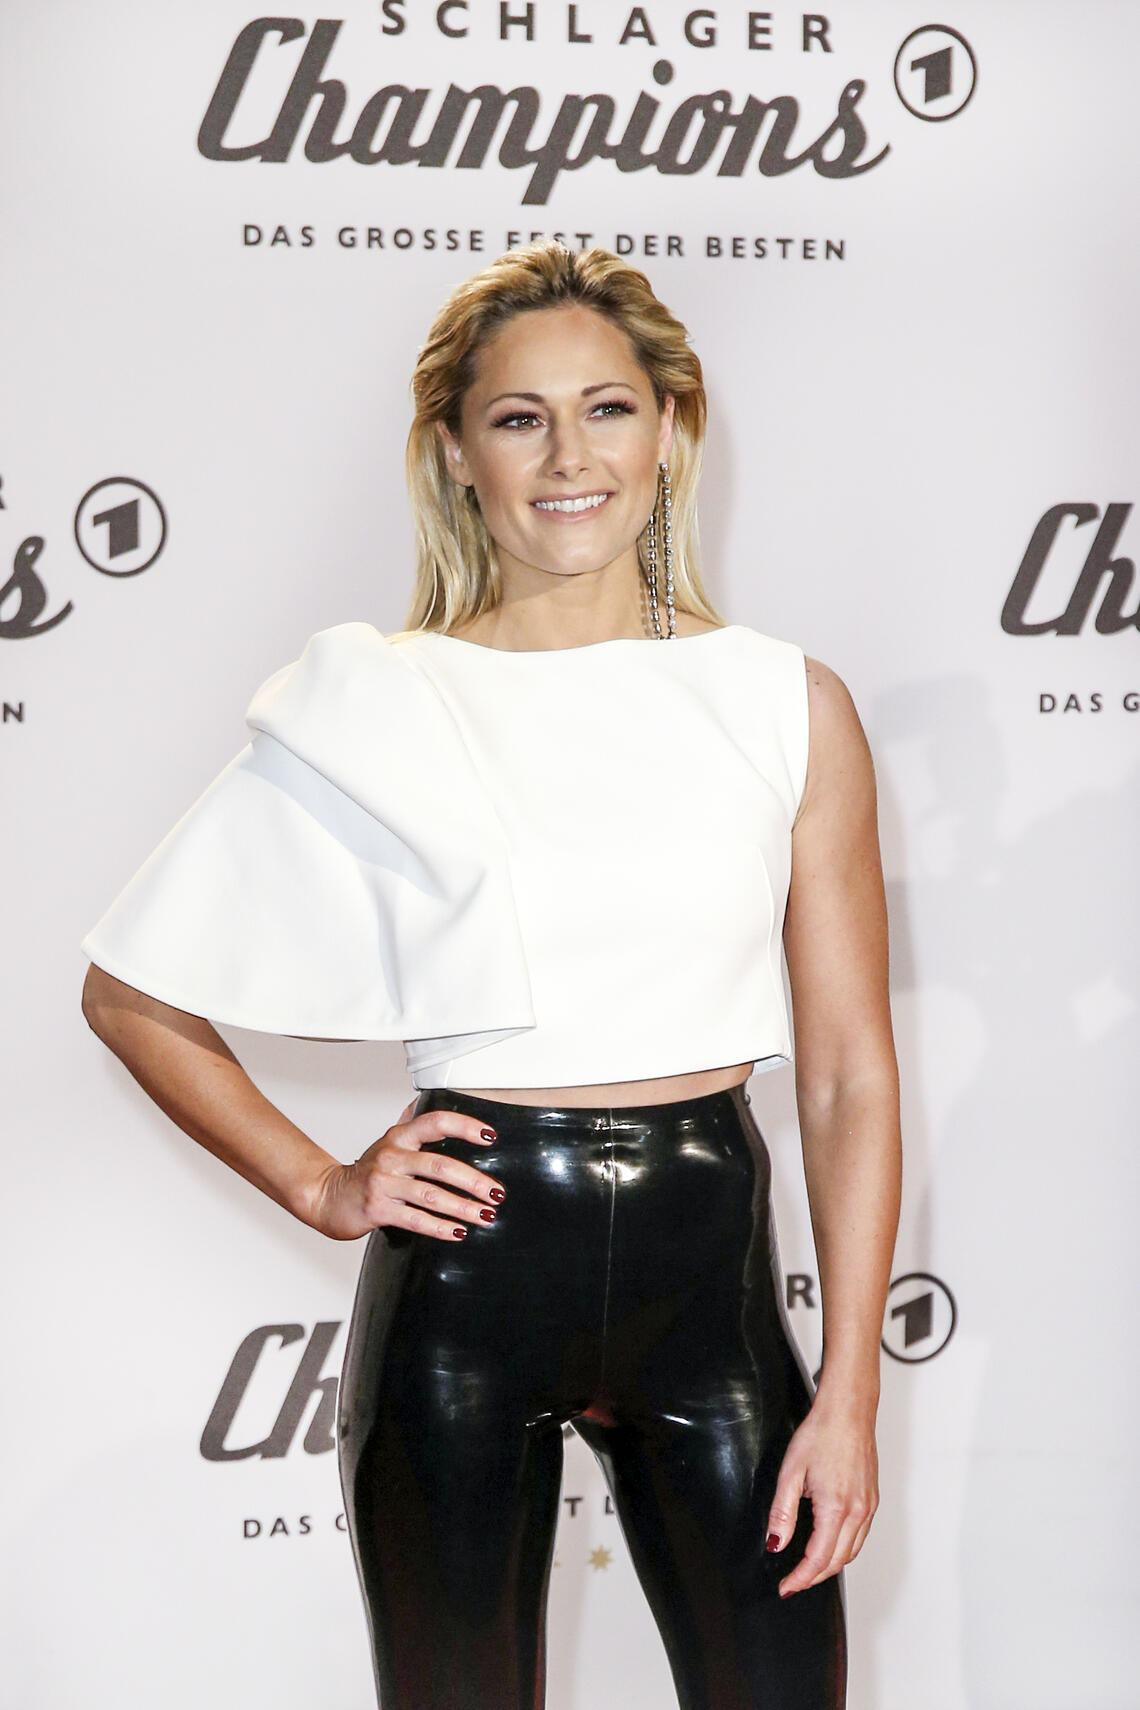 BERLIN, GERMANY - JANUARY 12: German singer Helene Fischer arrives at the television show 'Schlagerchampions - Das grosse Fest der Besten' at Velodrom on January 12, 2019 in Berlin, Germany. (Photo by Isa Foltin/WireImage)